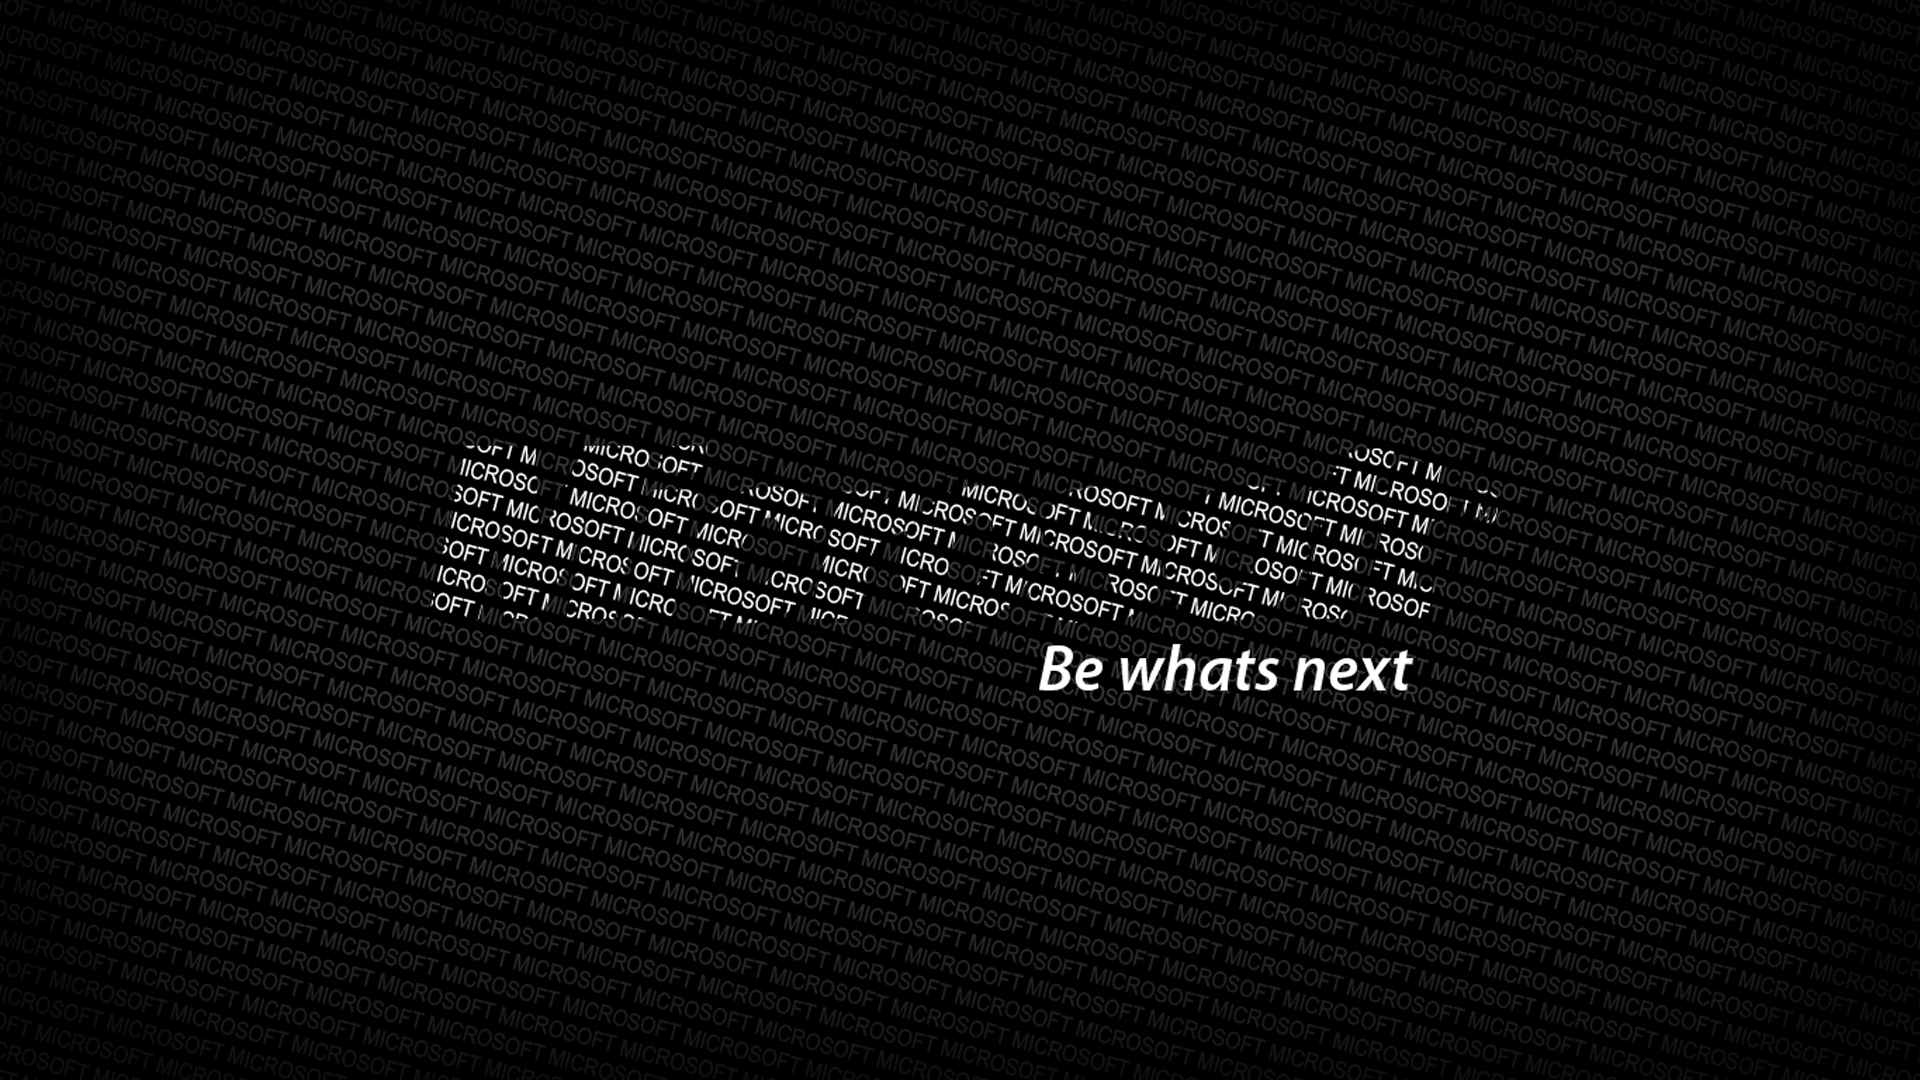 Microsoft Wallpaper